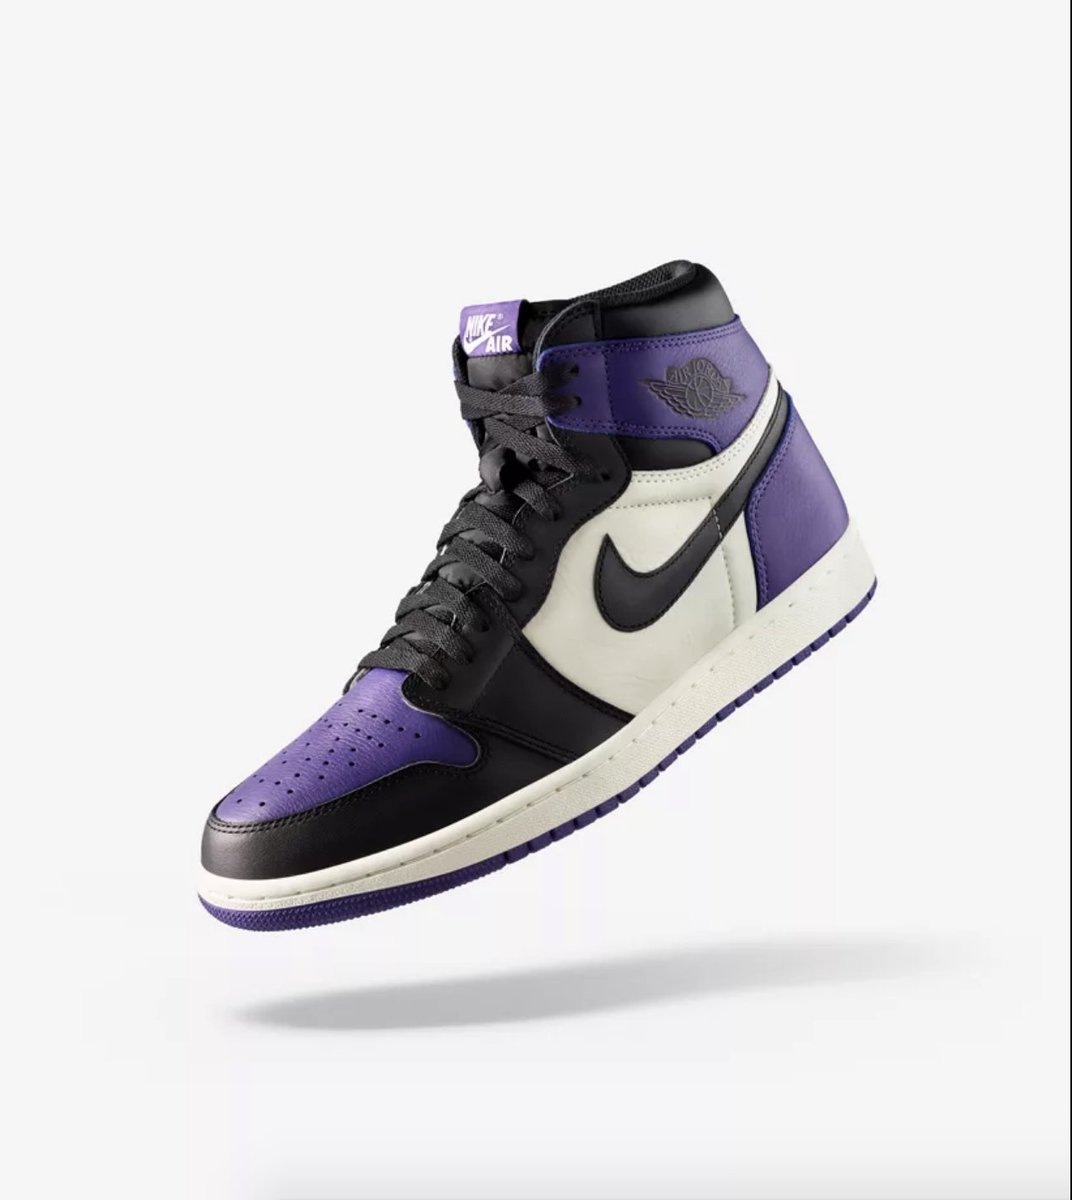 57b3d6d5f0db62 A full list of locations are now listed here   http   kicksdeals.ca release-dates 2017 air-jordan-1-high-retro-court-purple   …pic.twitter.com YBFPbZ4vjl